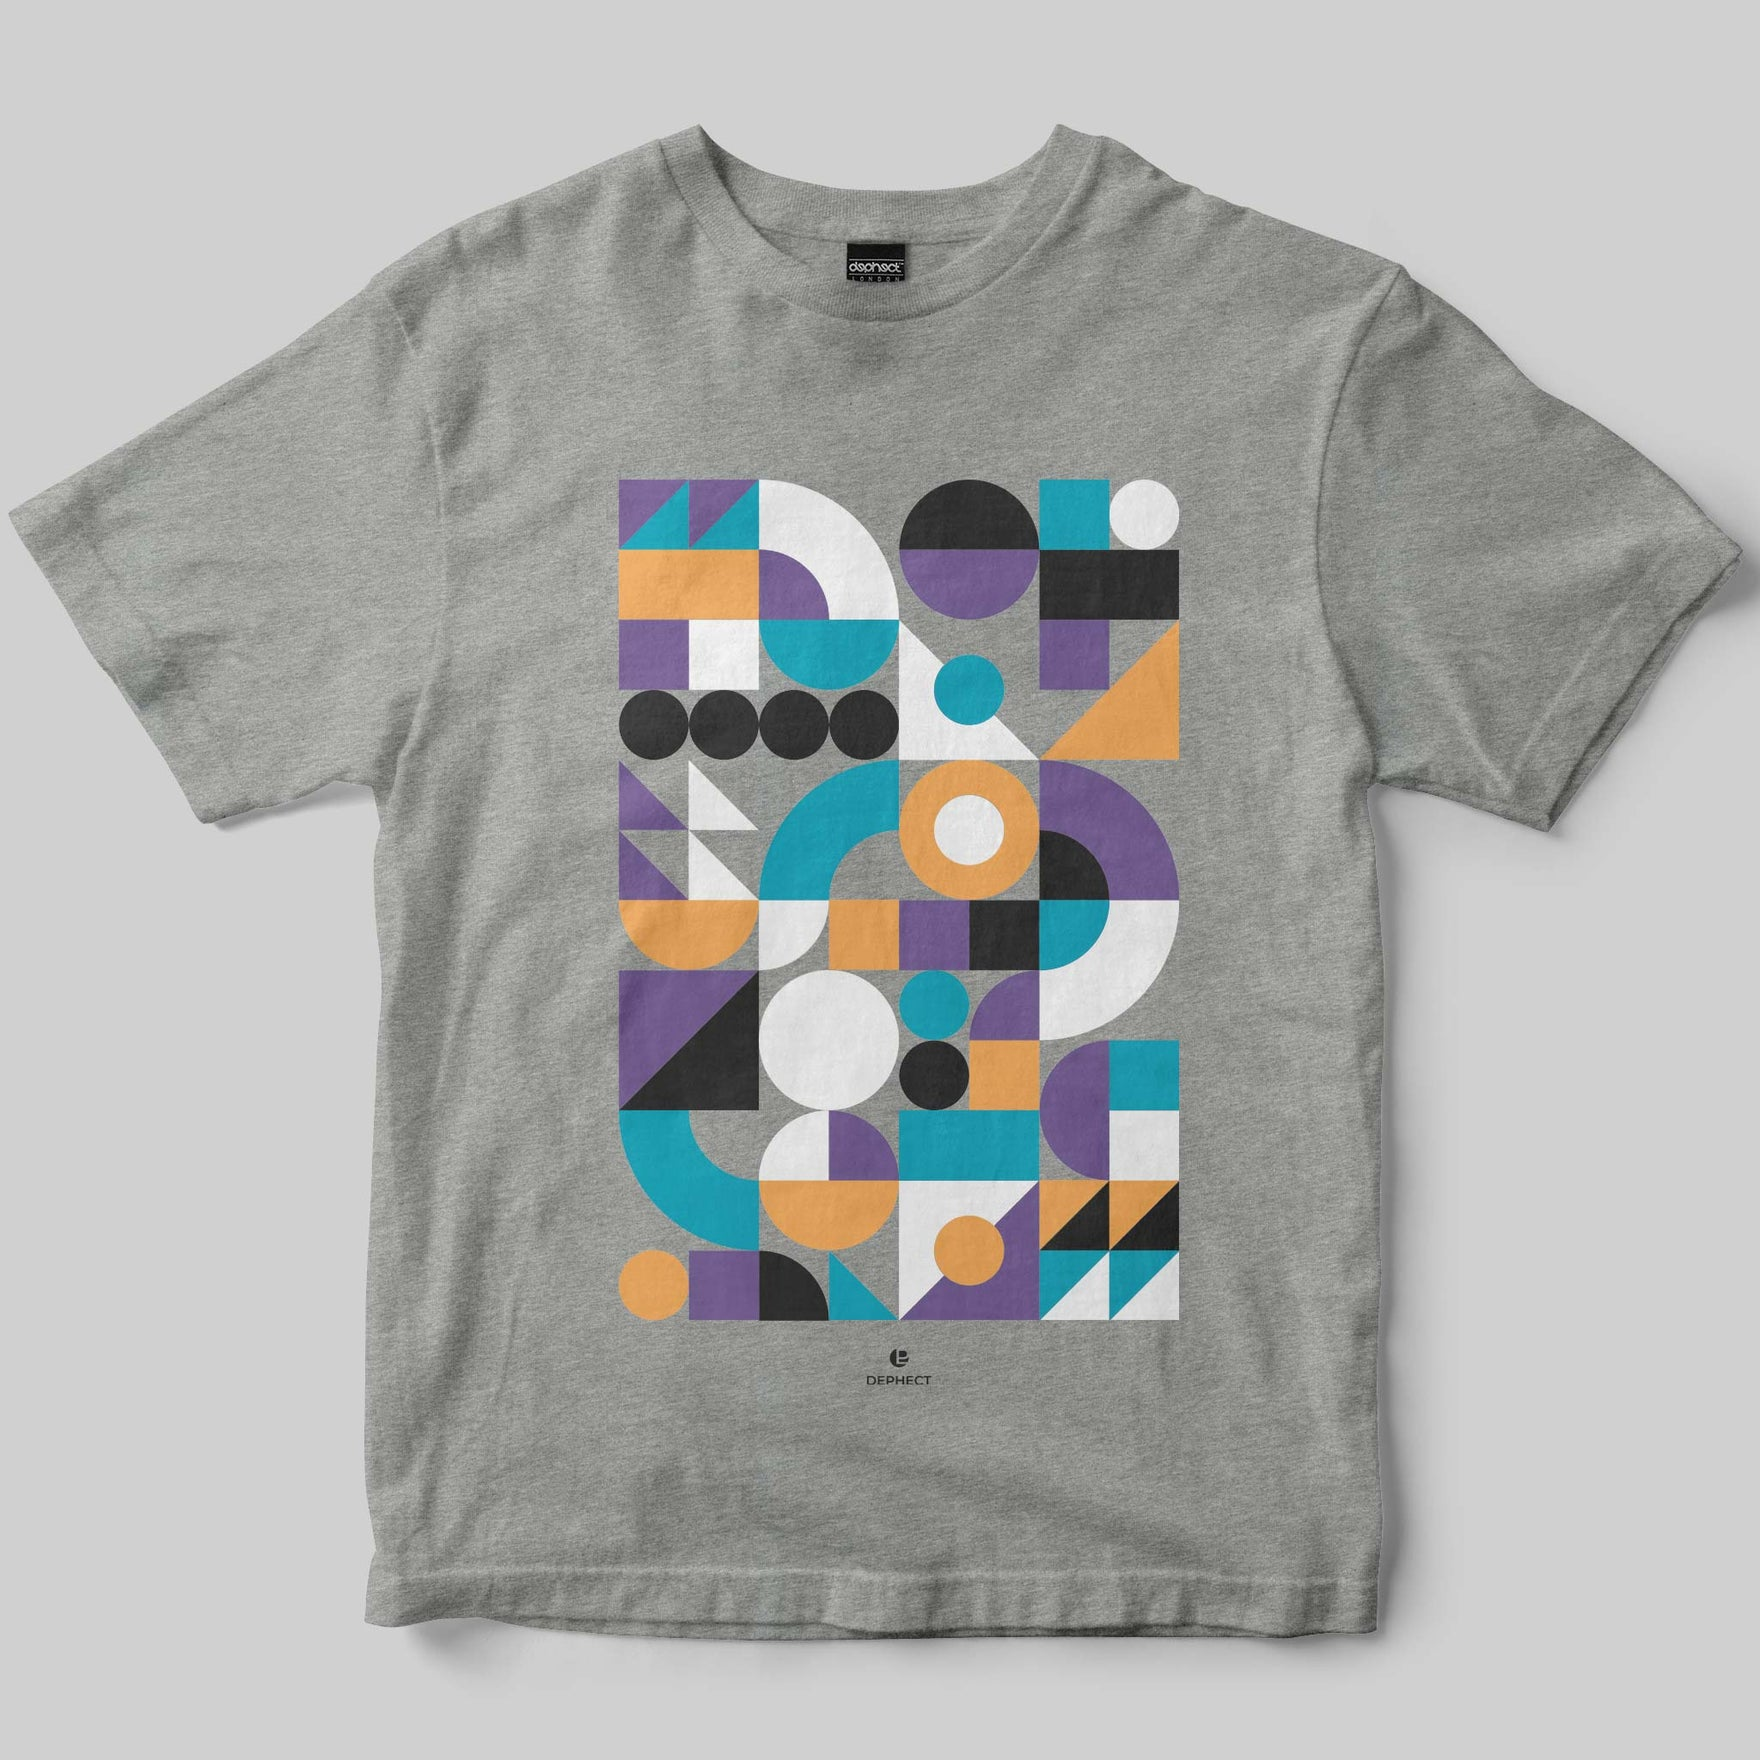 Simple T-Shirt / Heather Grey / by PosterLad